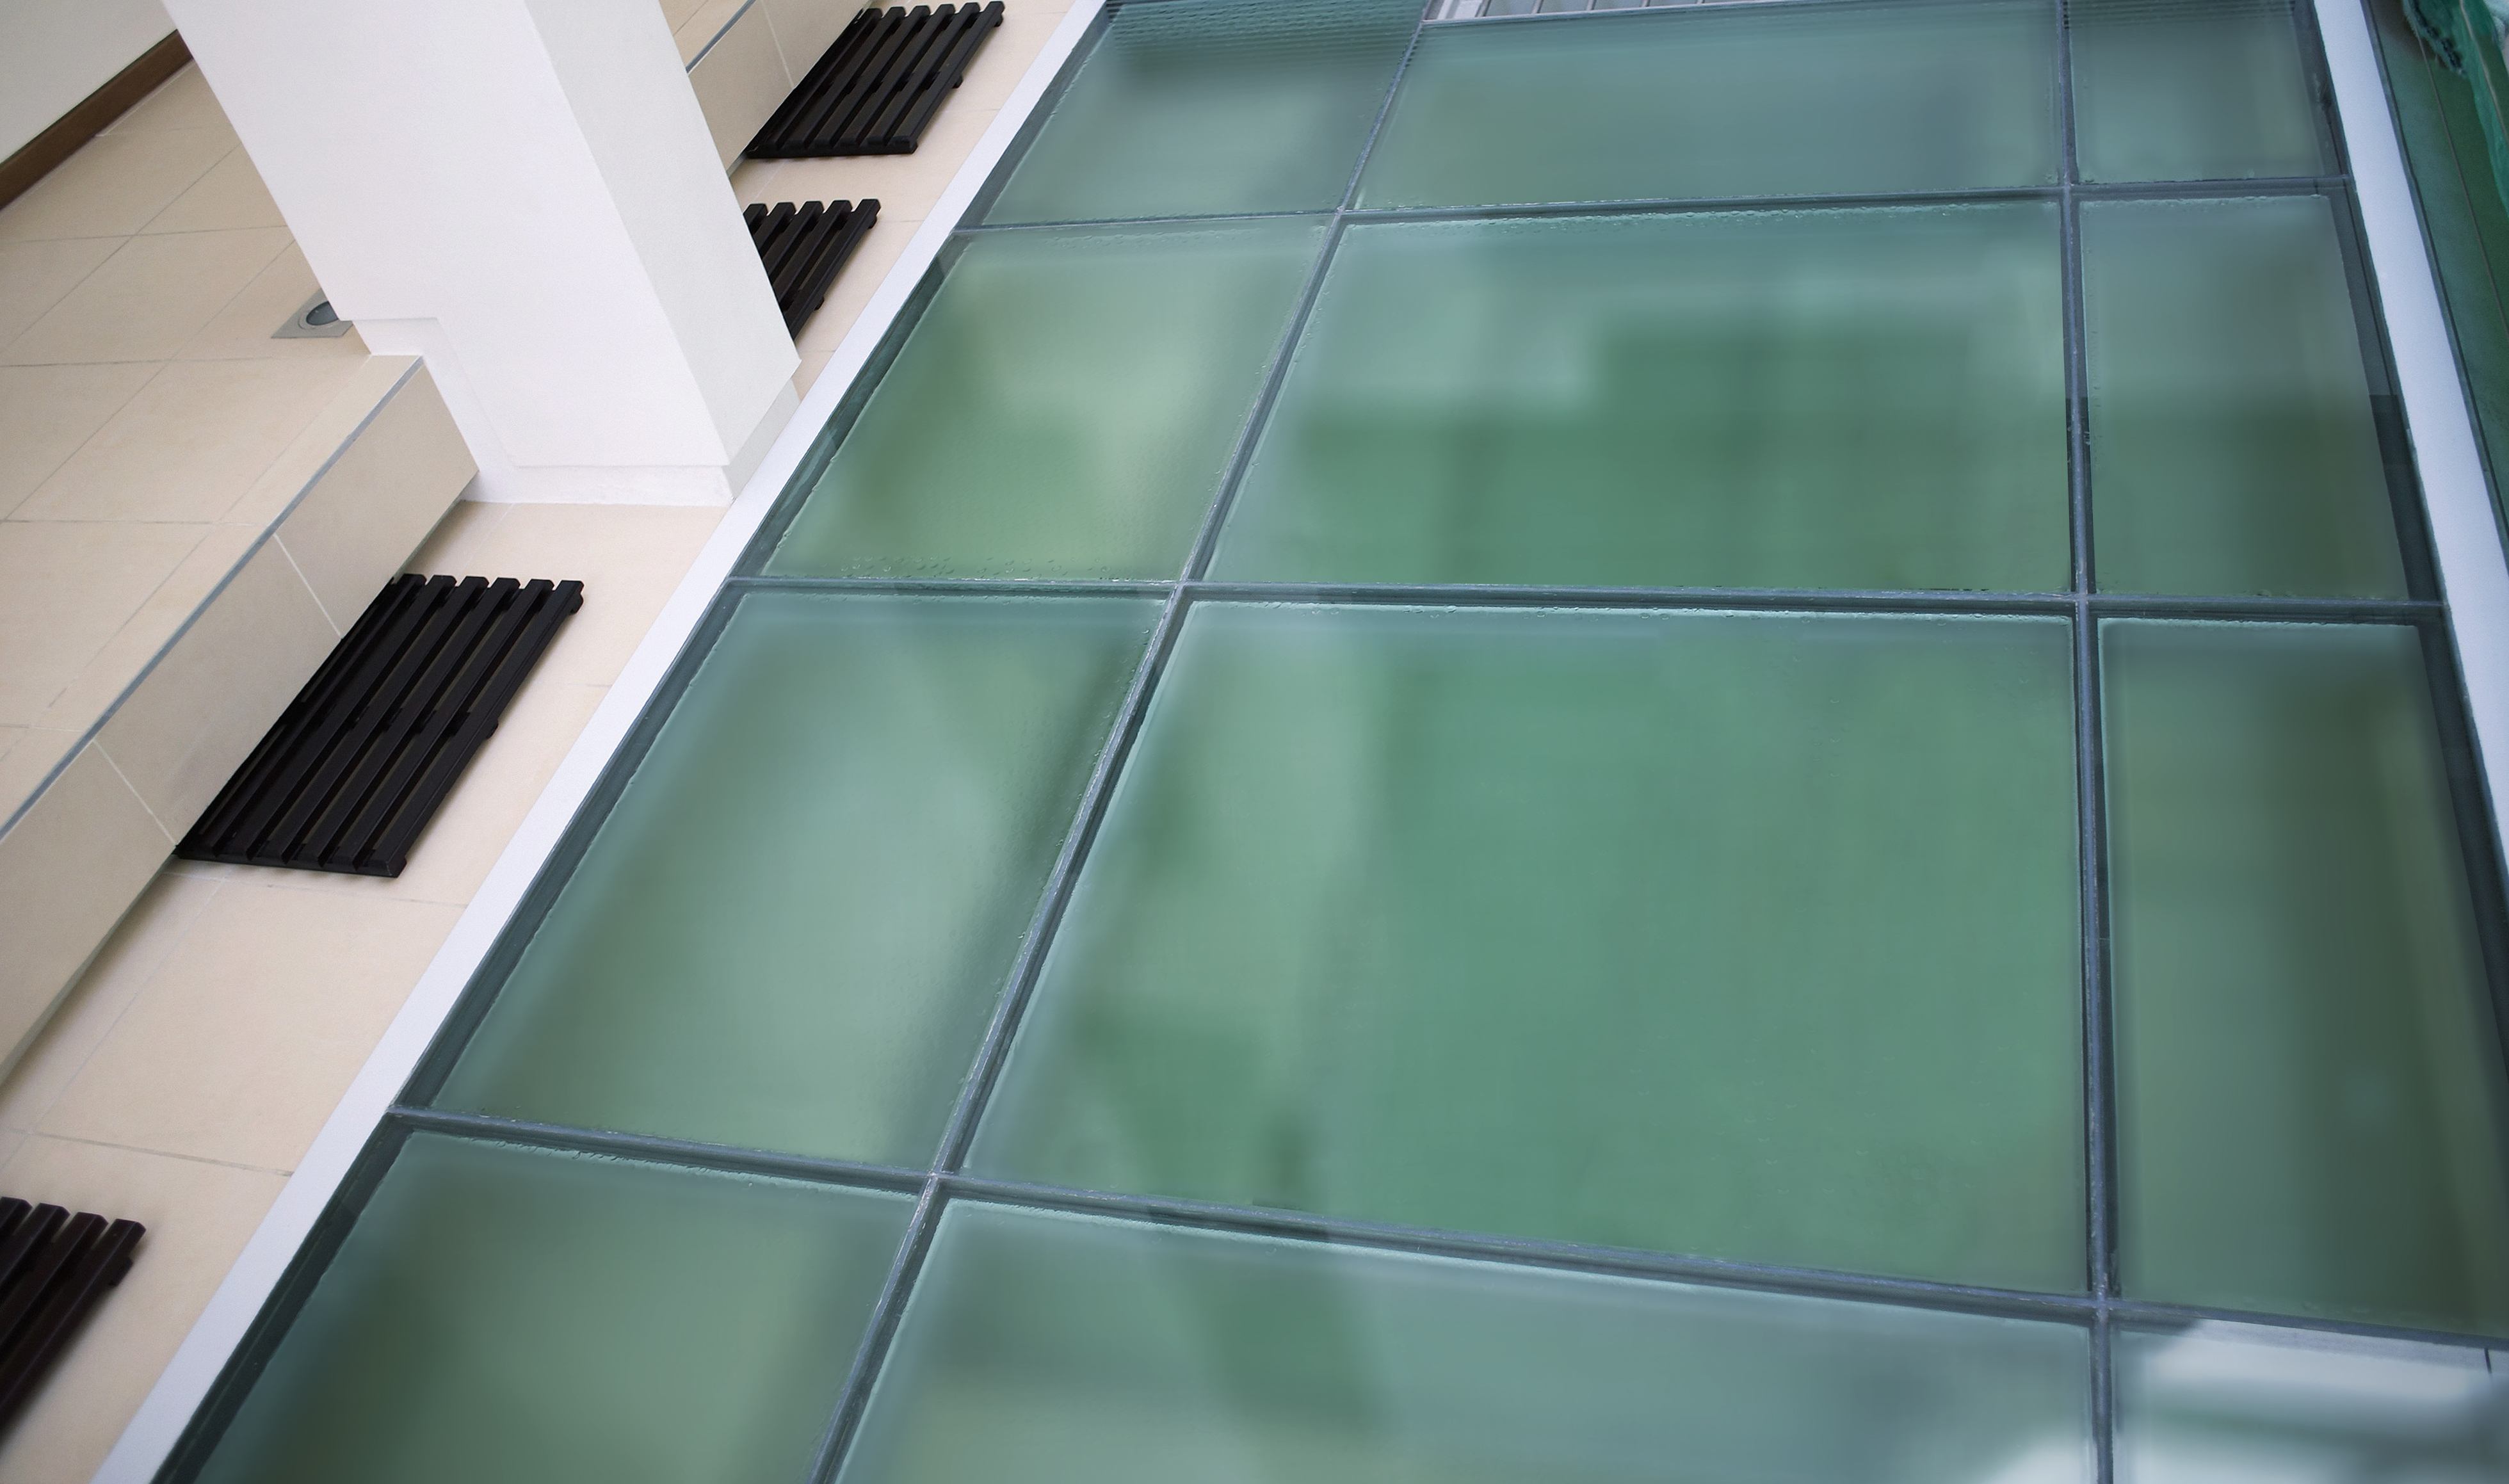 High Angle View Of A Glass Floor     Image By © Image100/Corbis